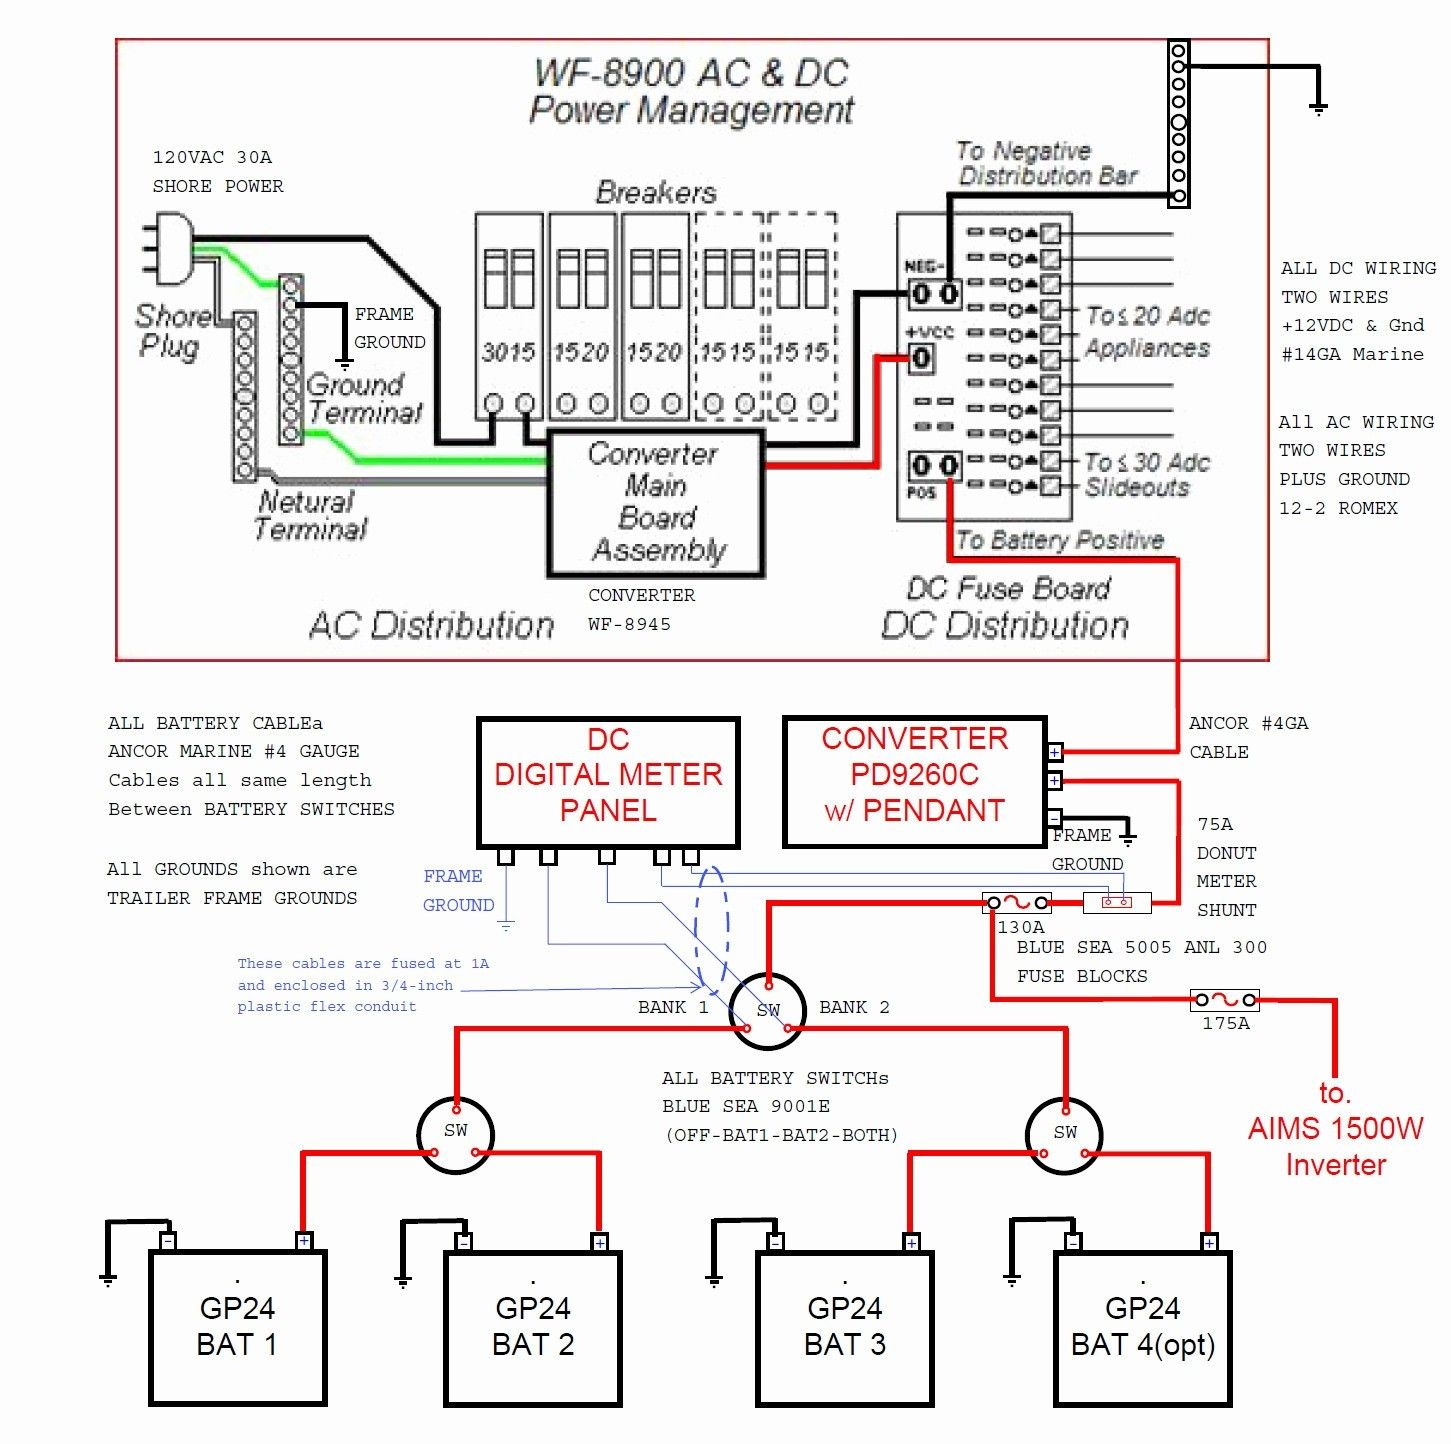 medium resolution of wiring diagram also 30 generator power cord inlet box likewise power30 amp generator plug diagram wiring